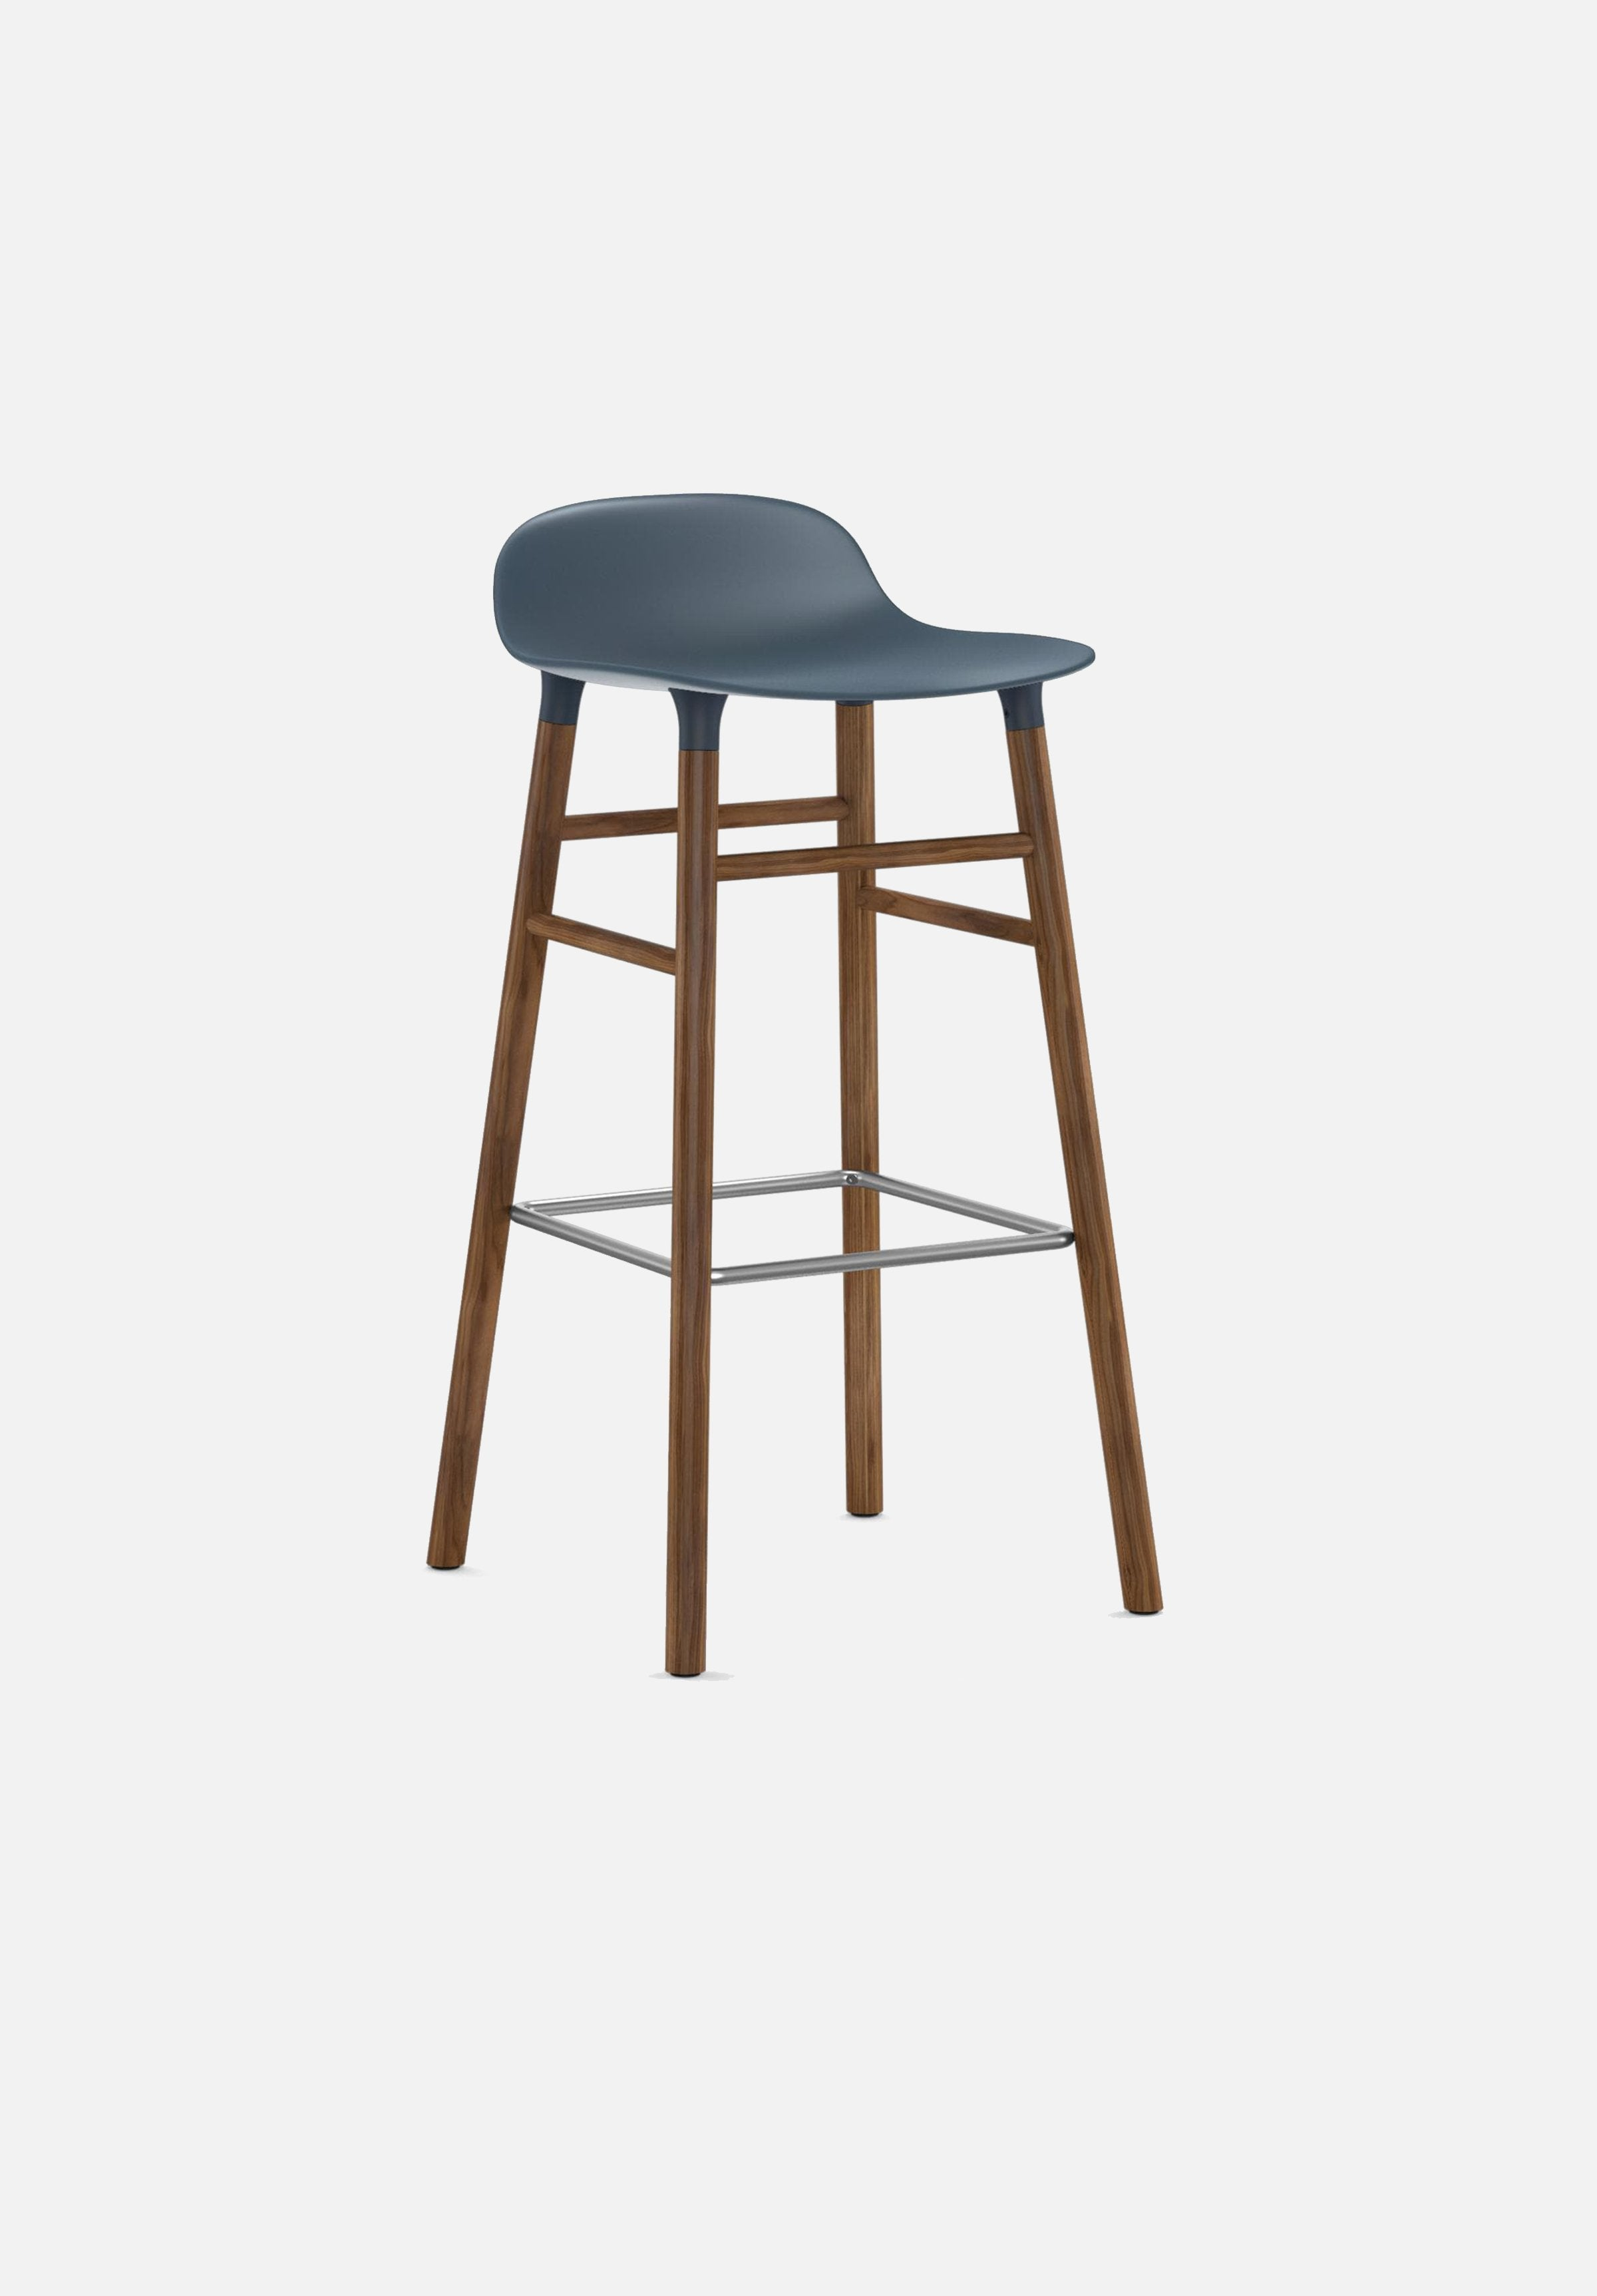 Form Stool — 75cm-Simon Legald-Normann Copenhagen-Blue-Solid Walnut-Average-canada-design-store-danish-denmark-furniture-interior